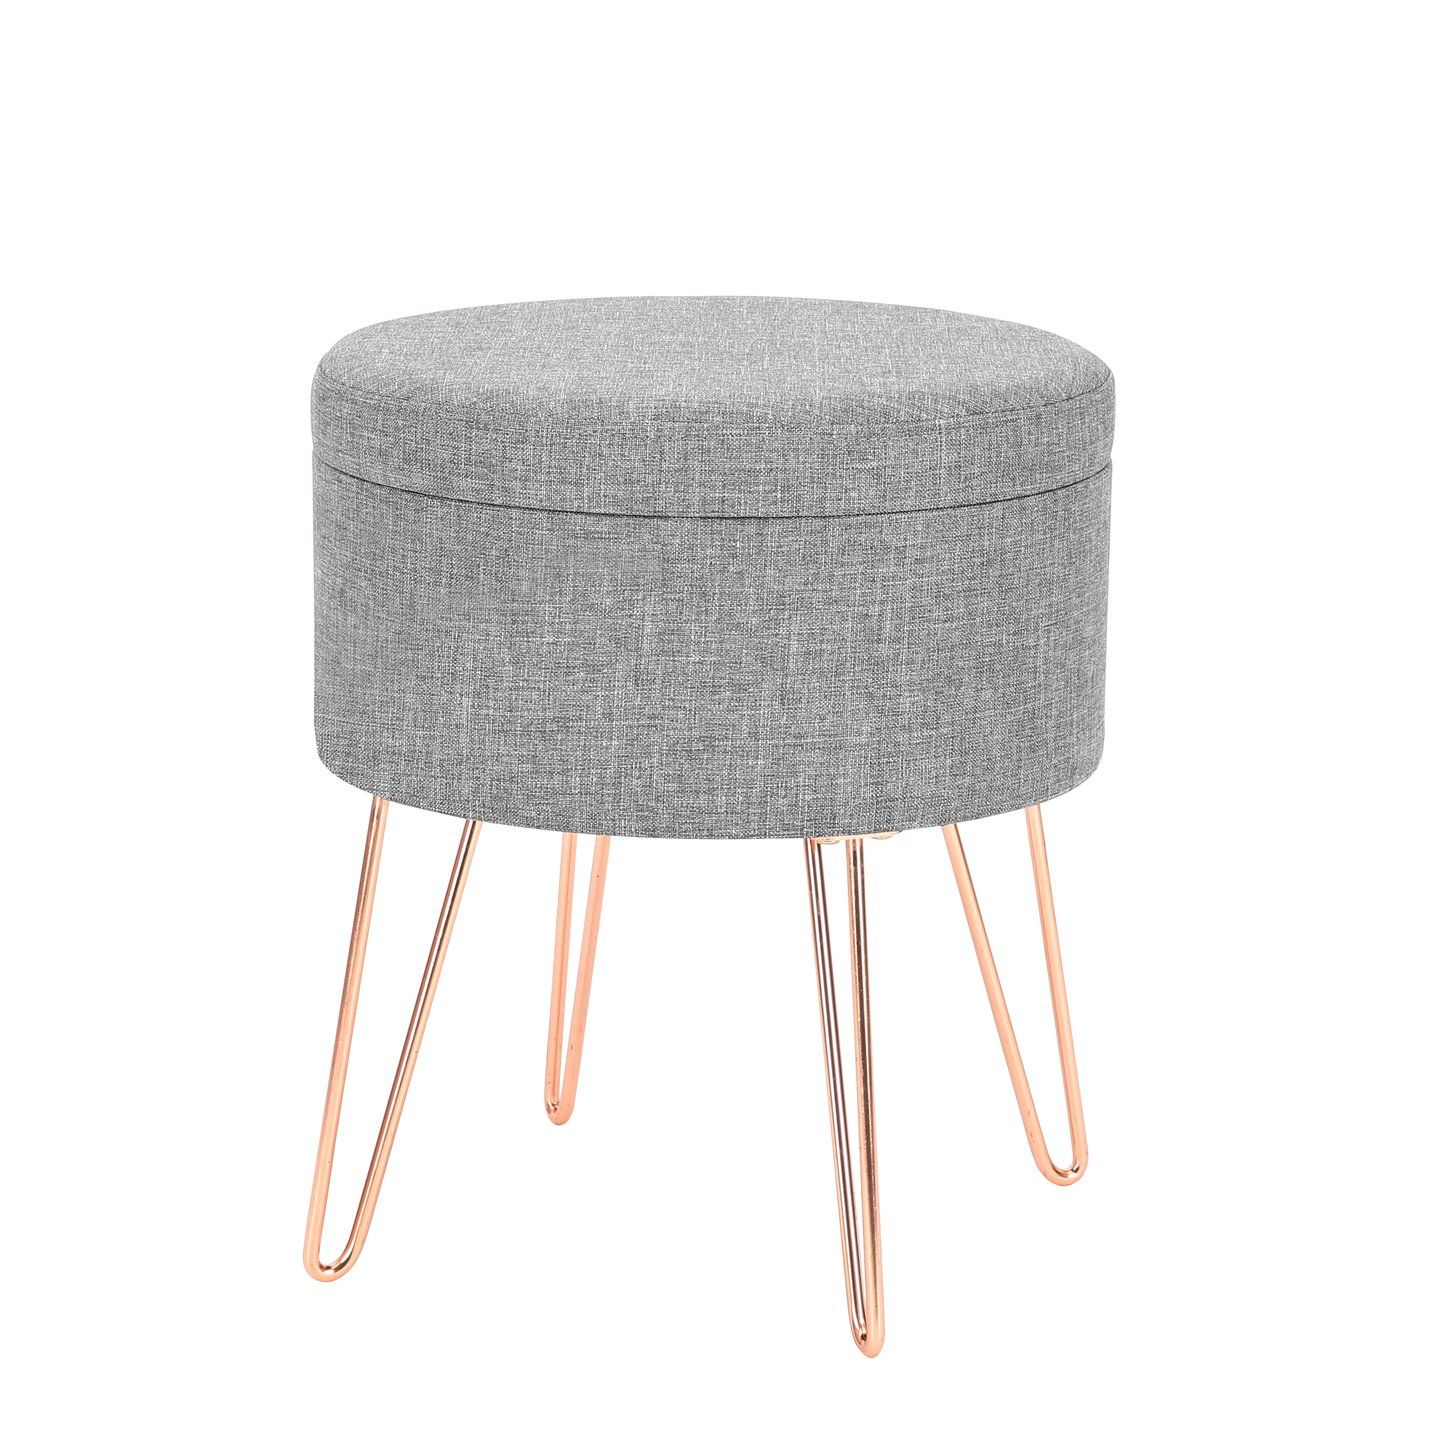 Fantastic Hattie Small Round Storage Stool In 2019 New Storage Gmtry Best Dining Table And Chair Ideas Images Gmtryco